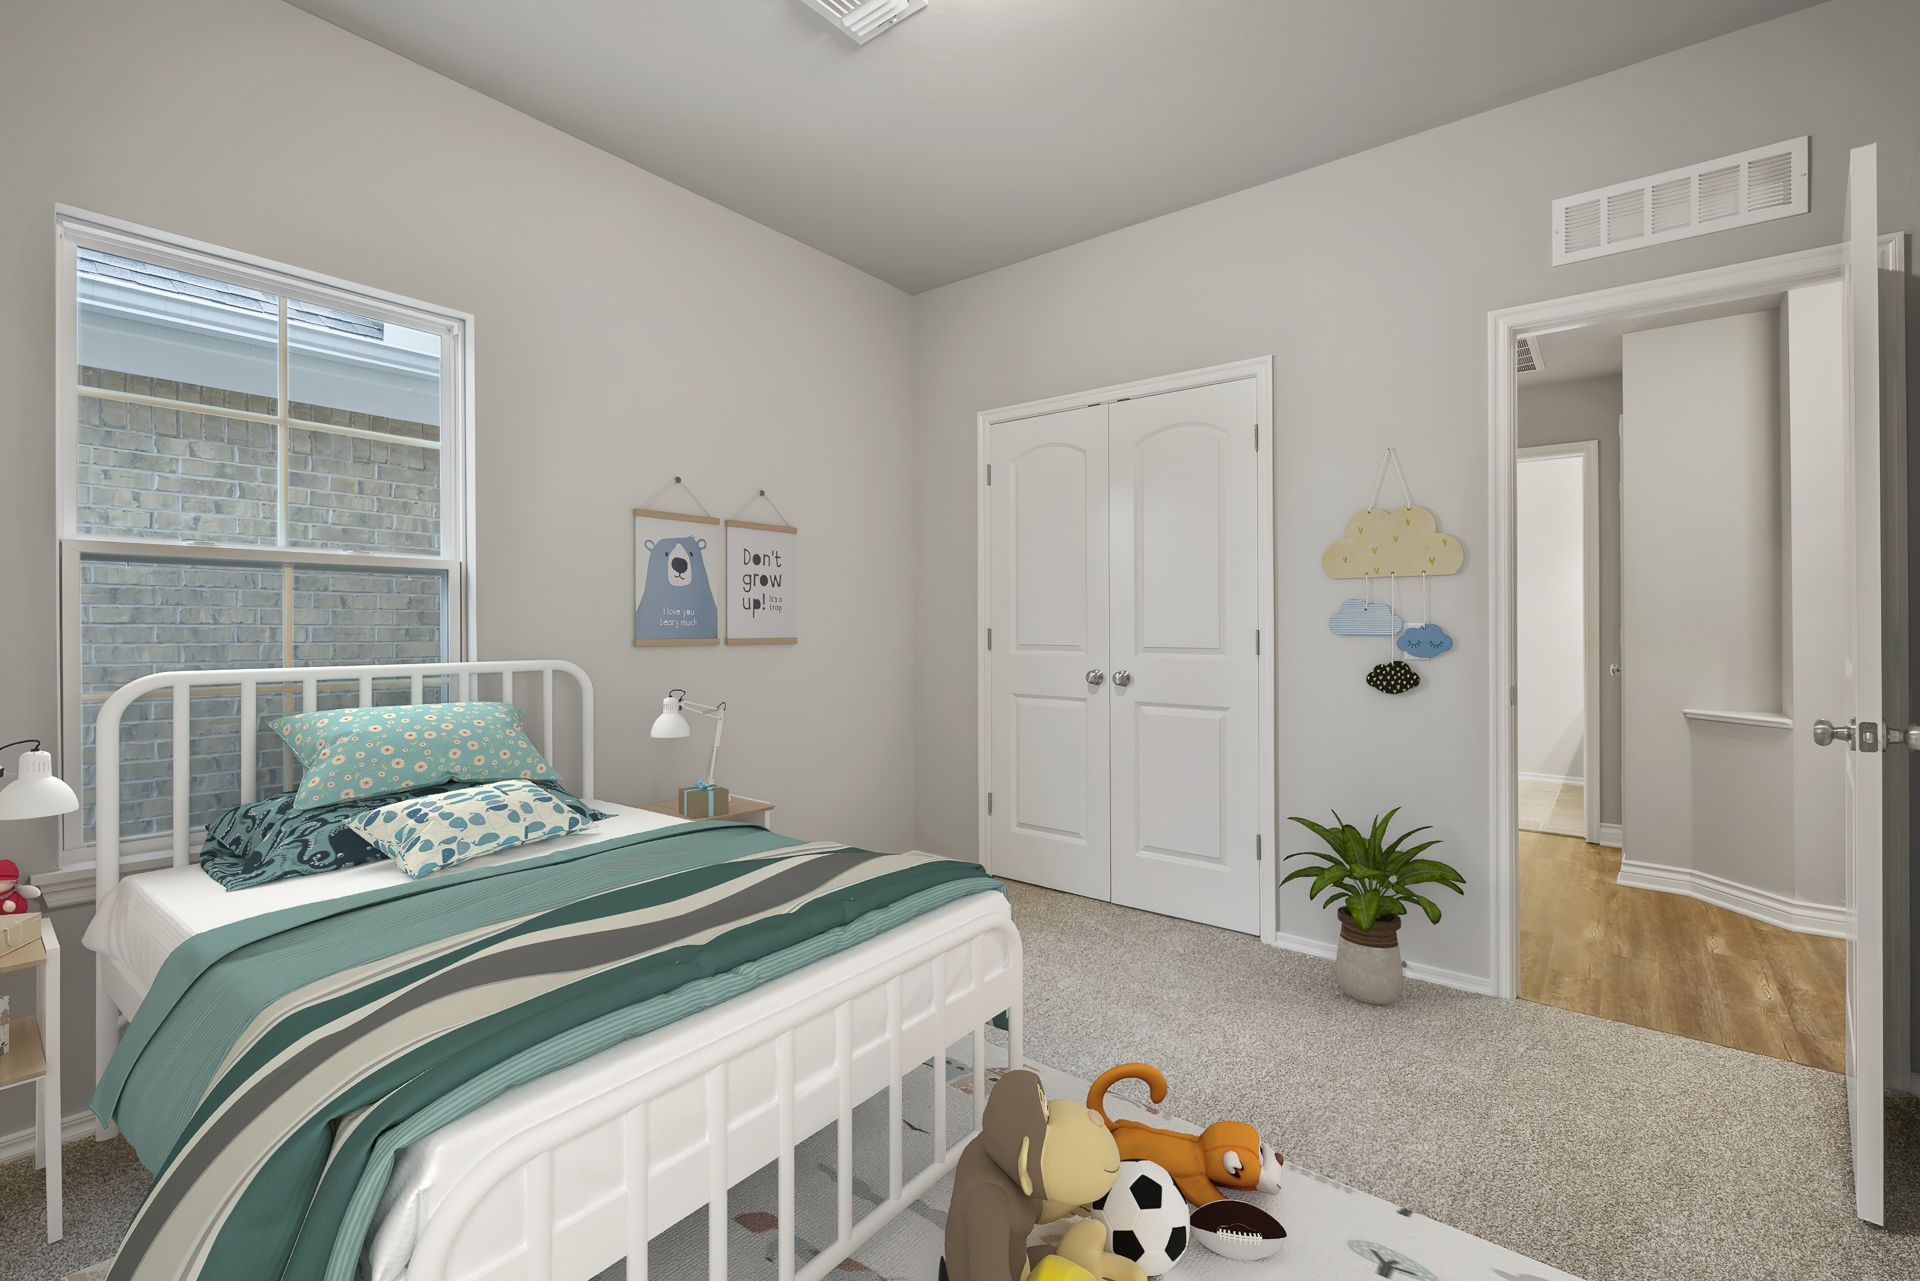 Bedroom featured in the Langley 3-Car By Ideal Homes in Oklahoma City, OK